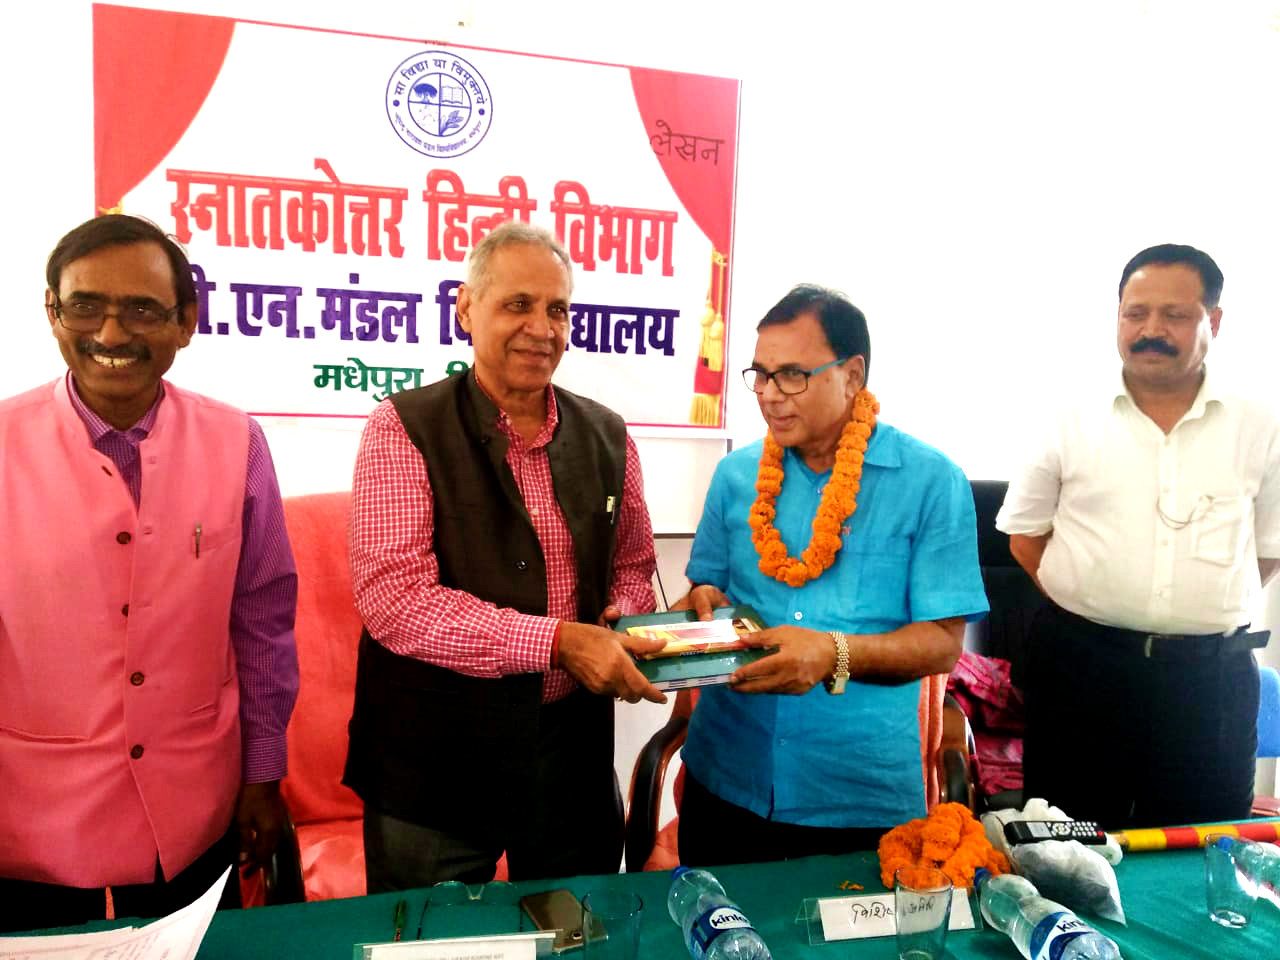 Dr.Madhepuri, for his acts of Philanthropy receiving honour from Vice-Chancellor Prof.(Dr.) Awadh Kishor Ray along along with Pro-VC Dr.Farooque Ali, Registrar Colonel Neeraj Kumar, HOD-Hindi Dr.Sita Ram Sharma on the occasion of a seminar organised by P.G. Hindi at North Campus of BNMU , Madhepura.